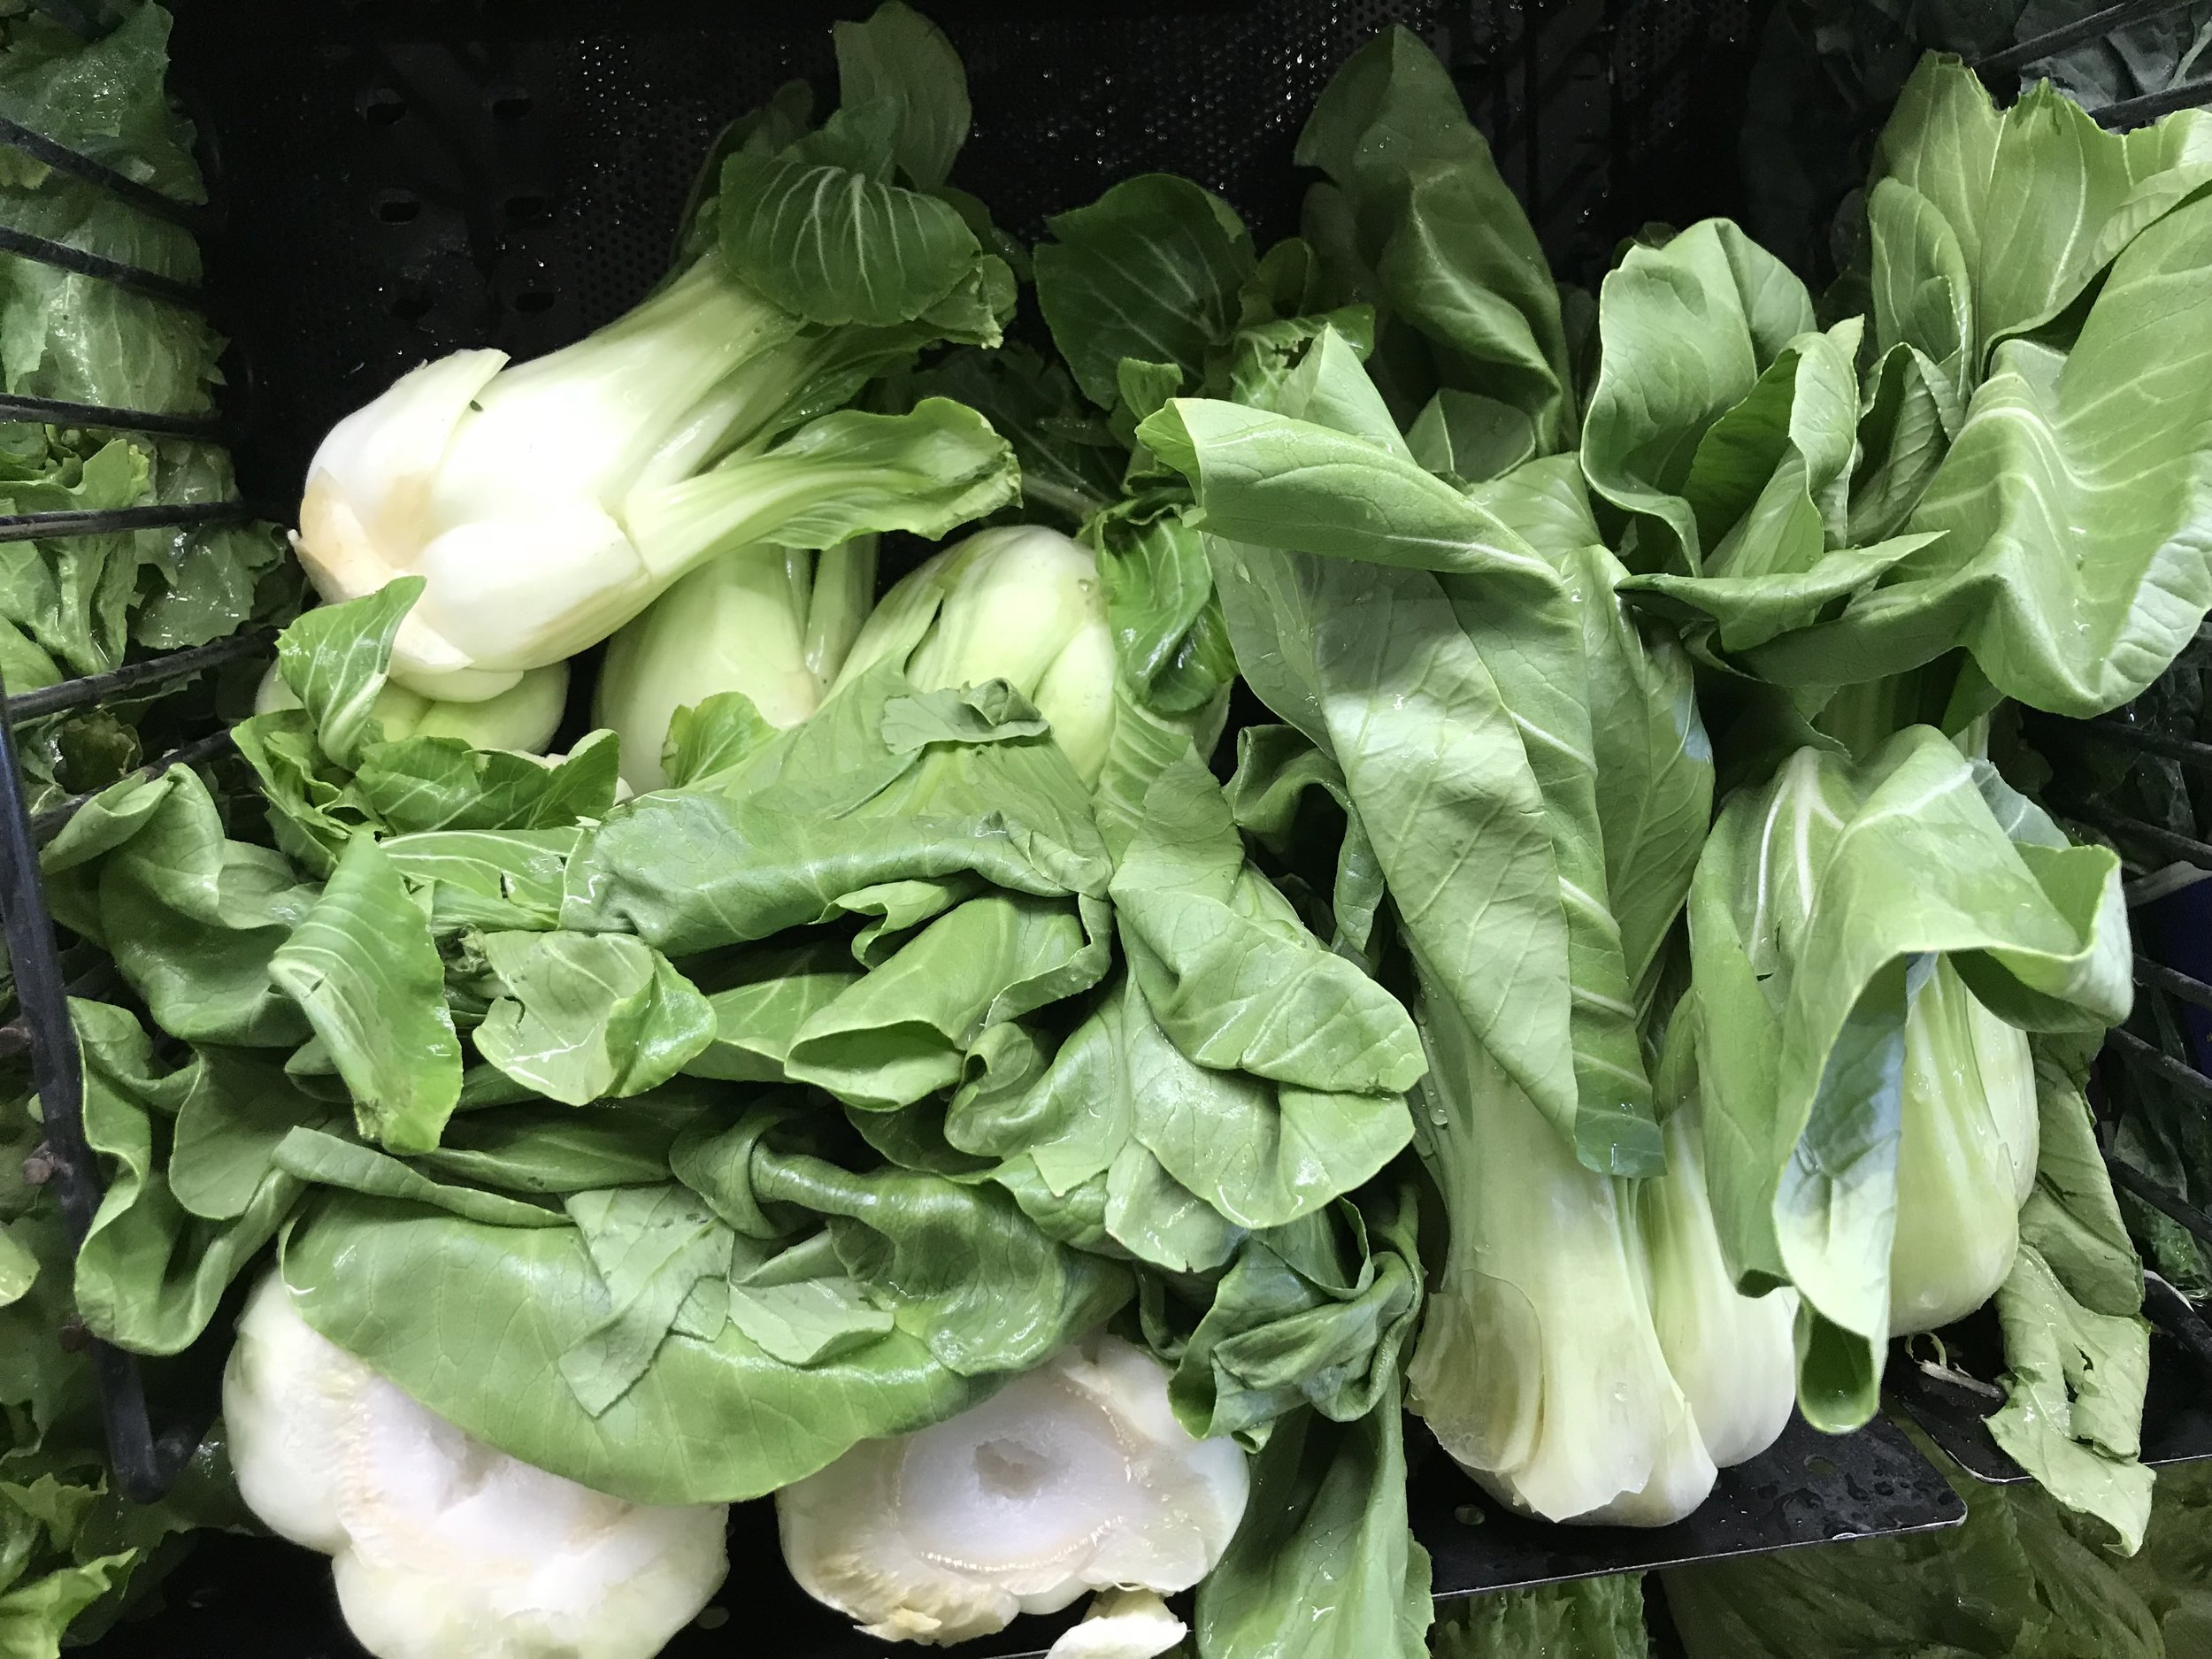 Bok Choy is great chopped up and satayed with sea salt, garlic and olive oil.